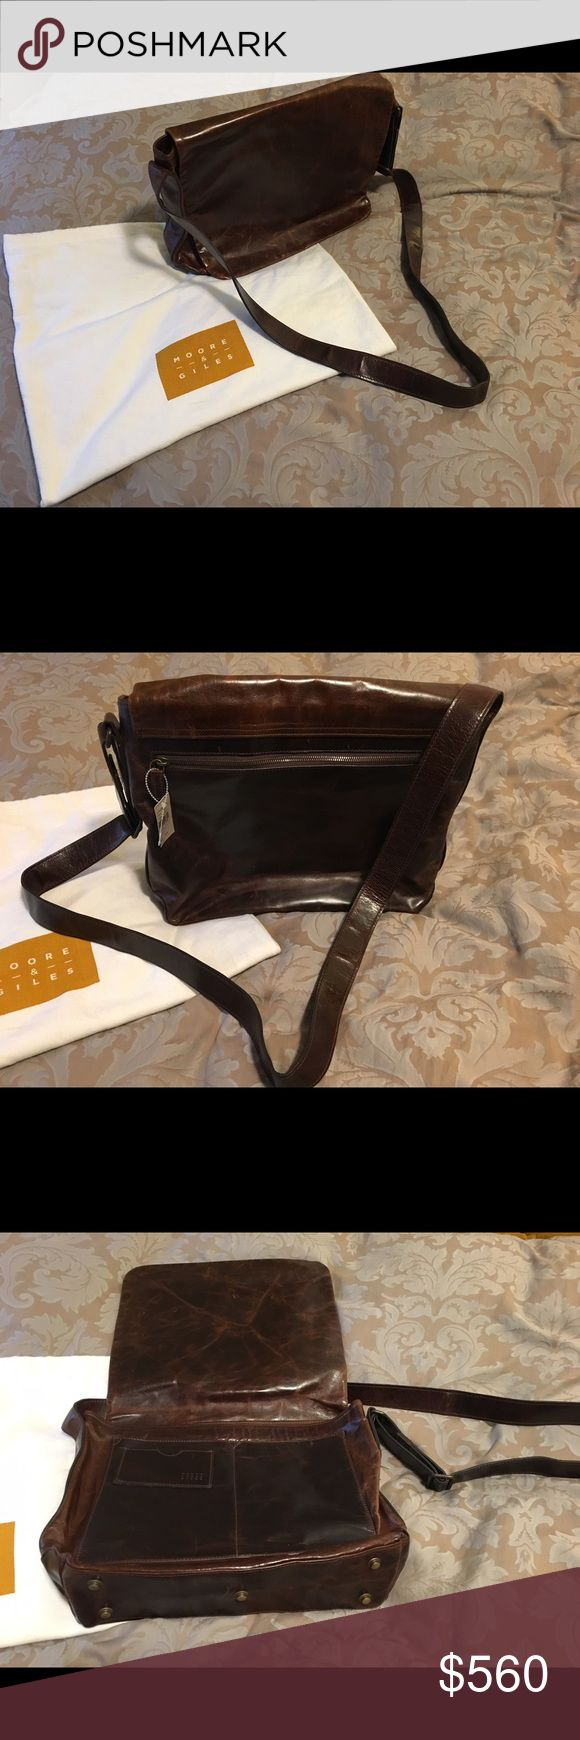 """NEW Moore & Giles Men Messenger Bag New with tags. Never been used Browpton Brown messenger bag. Dimensions 15.5""""L x 11""""H x 4""""W weights 3pounds. Pockets on the front and side of bag for bunkers cards or cell phones. Two internal zipper pockets flank the main compartment. Perfect condition with duffle bag! Great gift! Real Italian leather! Moore & Giles  Bags Briefcases"""